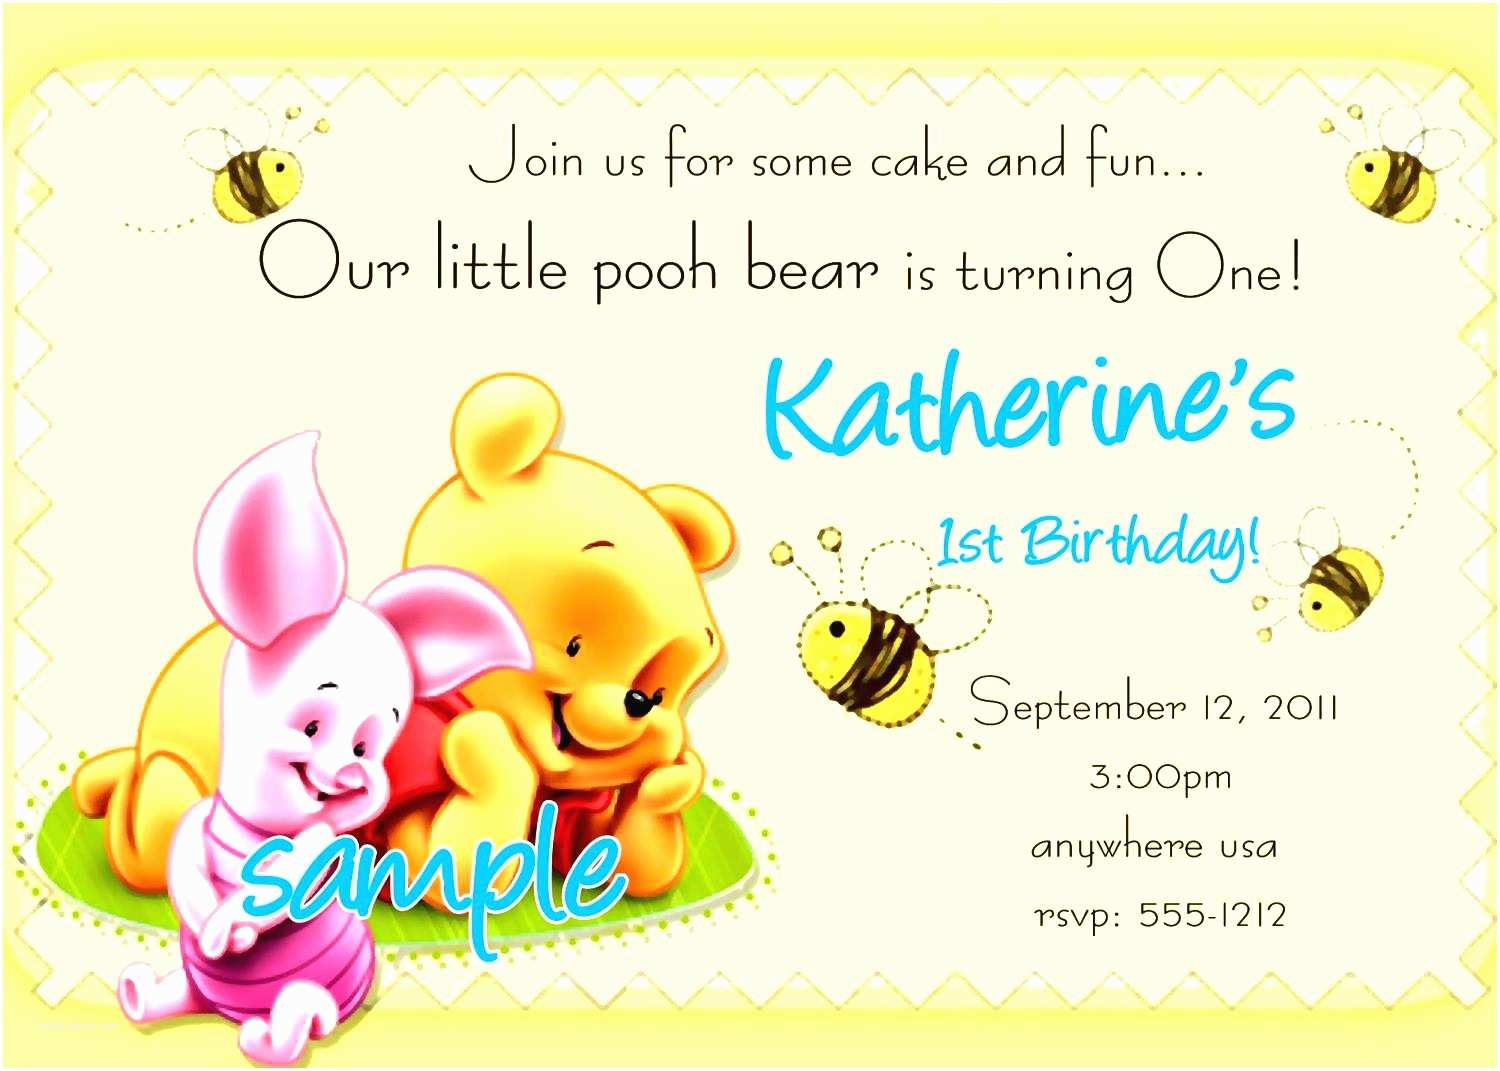 Party Invitation Sample 21 Kids Birthday Invitation Wording that We Can Make